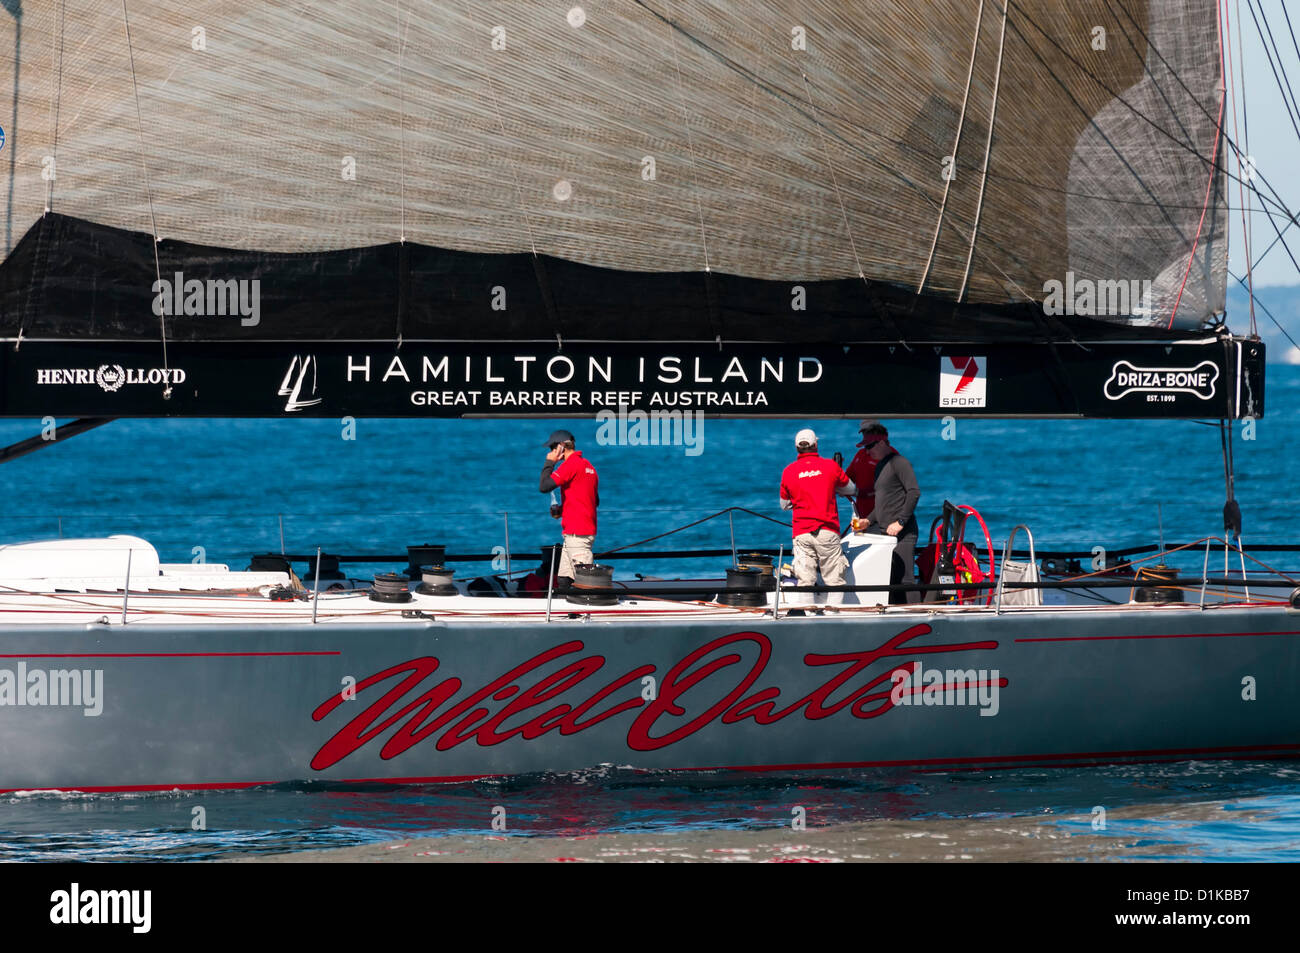 Wild Oats XI on the Gold Coast, Queensland, Australia 2012. Practice sail for the Sydney to Hobart Yacht Race. - Stock Image